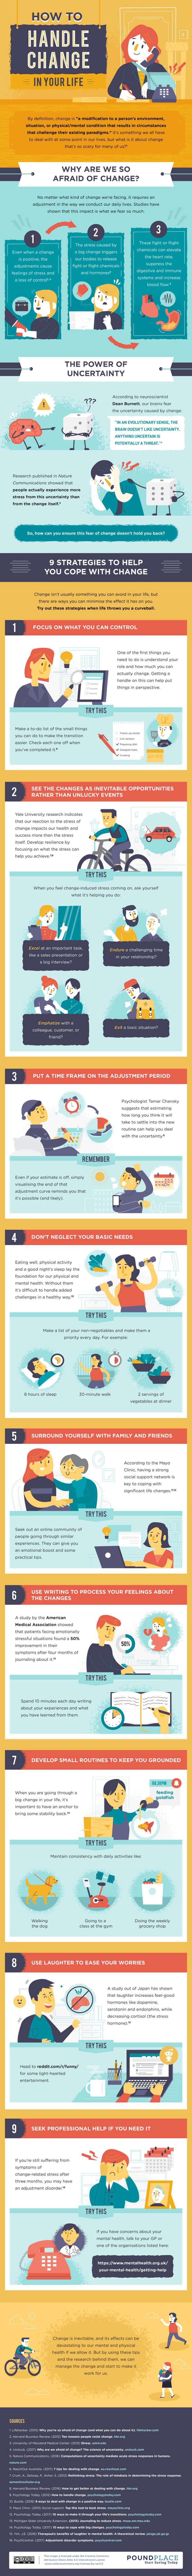 Managing Change in Your Life: 9 Strategies - Infographic